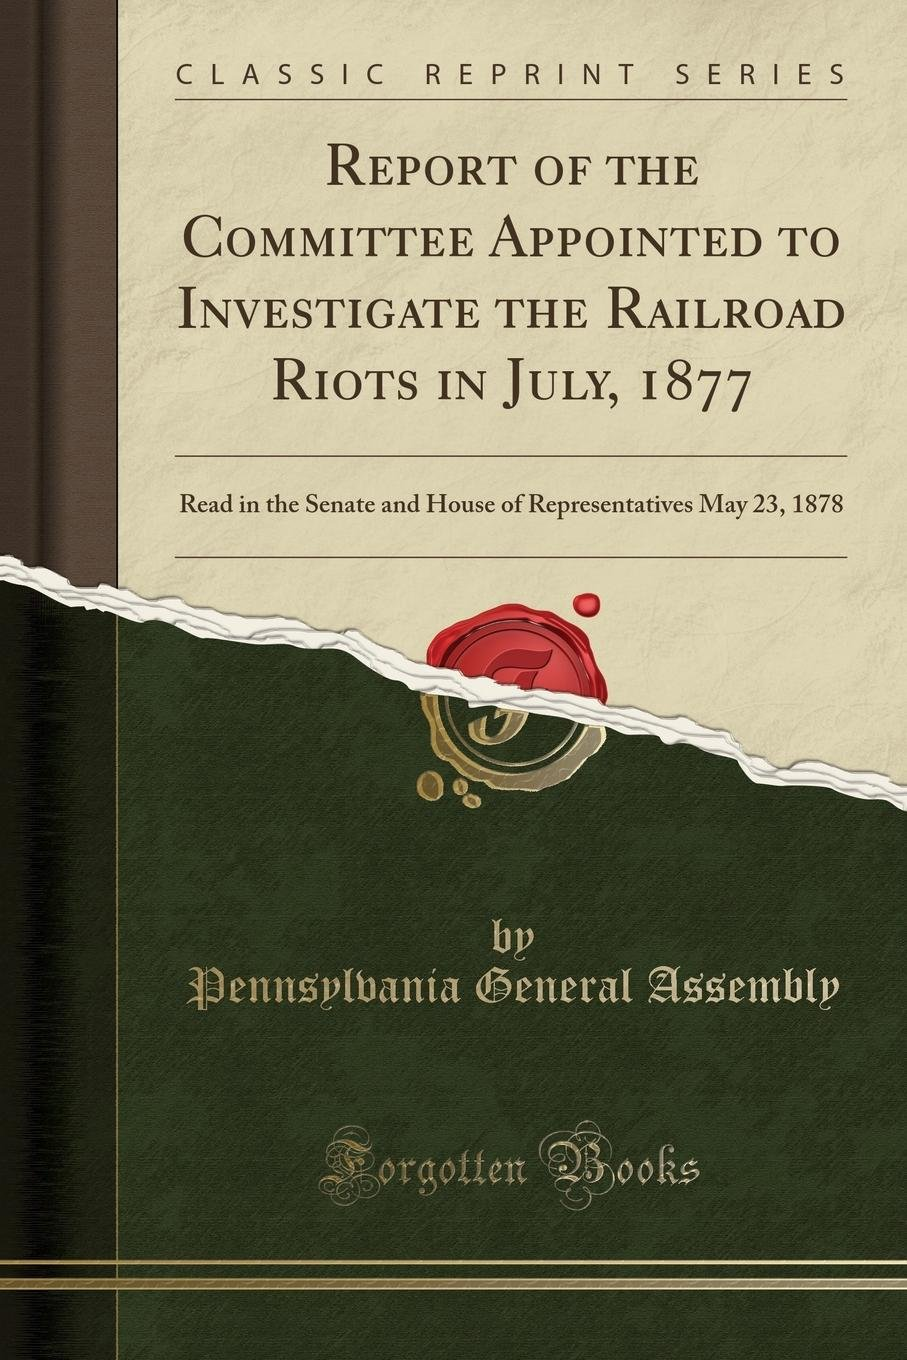 Report of the Committee Appointed to Investigate the Railroad Riots in July, 1877: Read in the Senate and House of Representatives May 23, 1878 (Classic Reprint) pdf